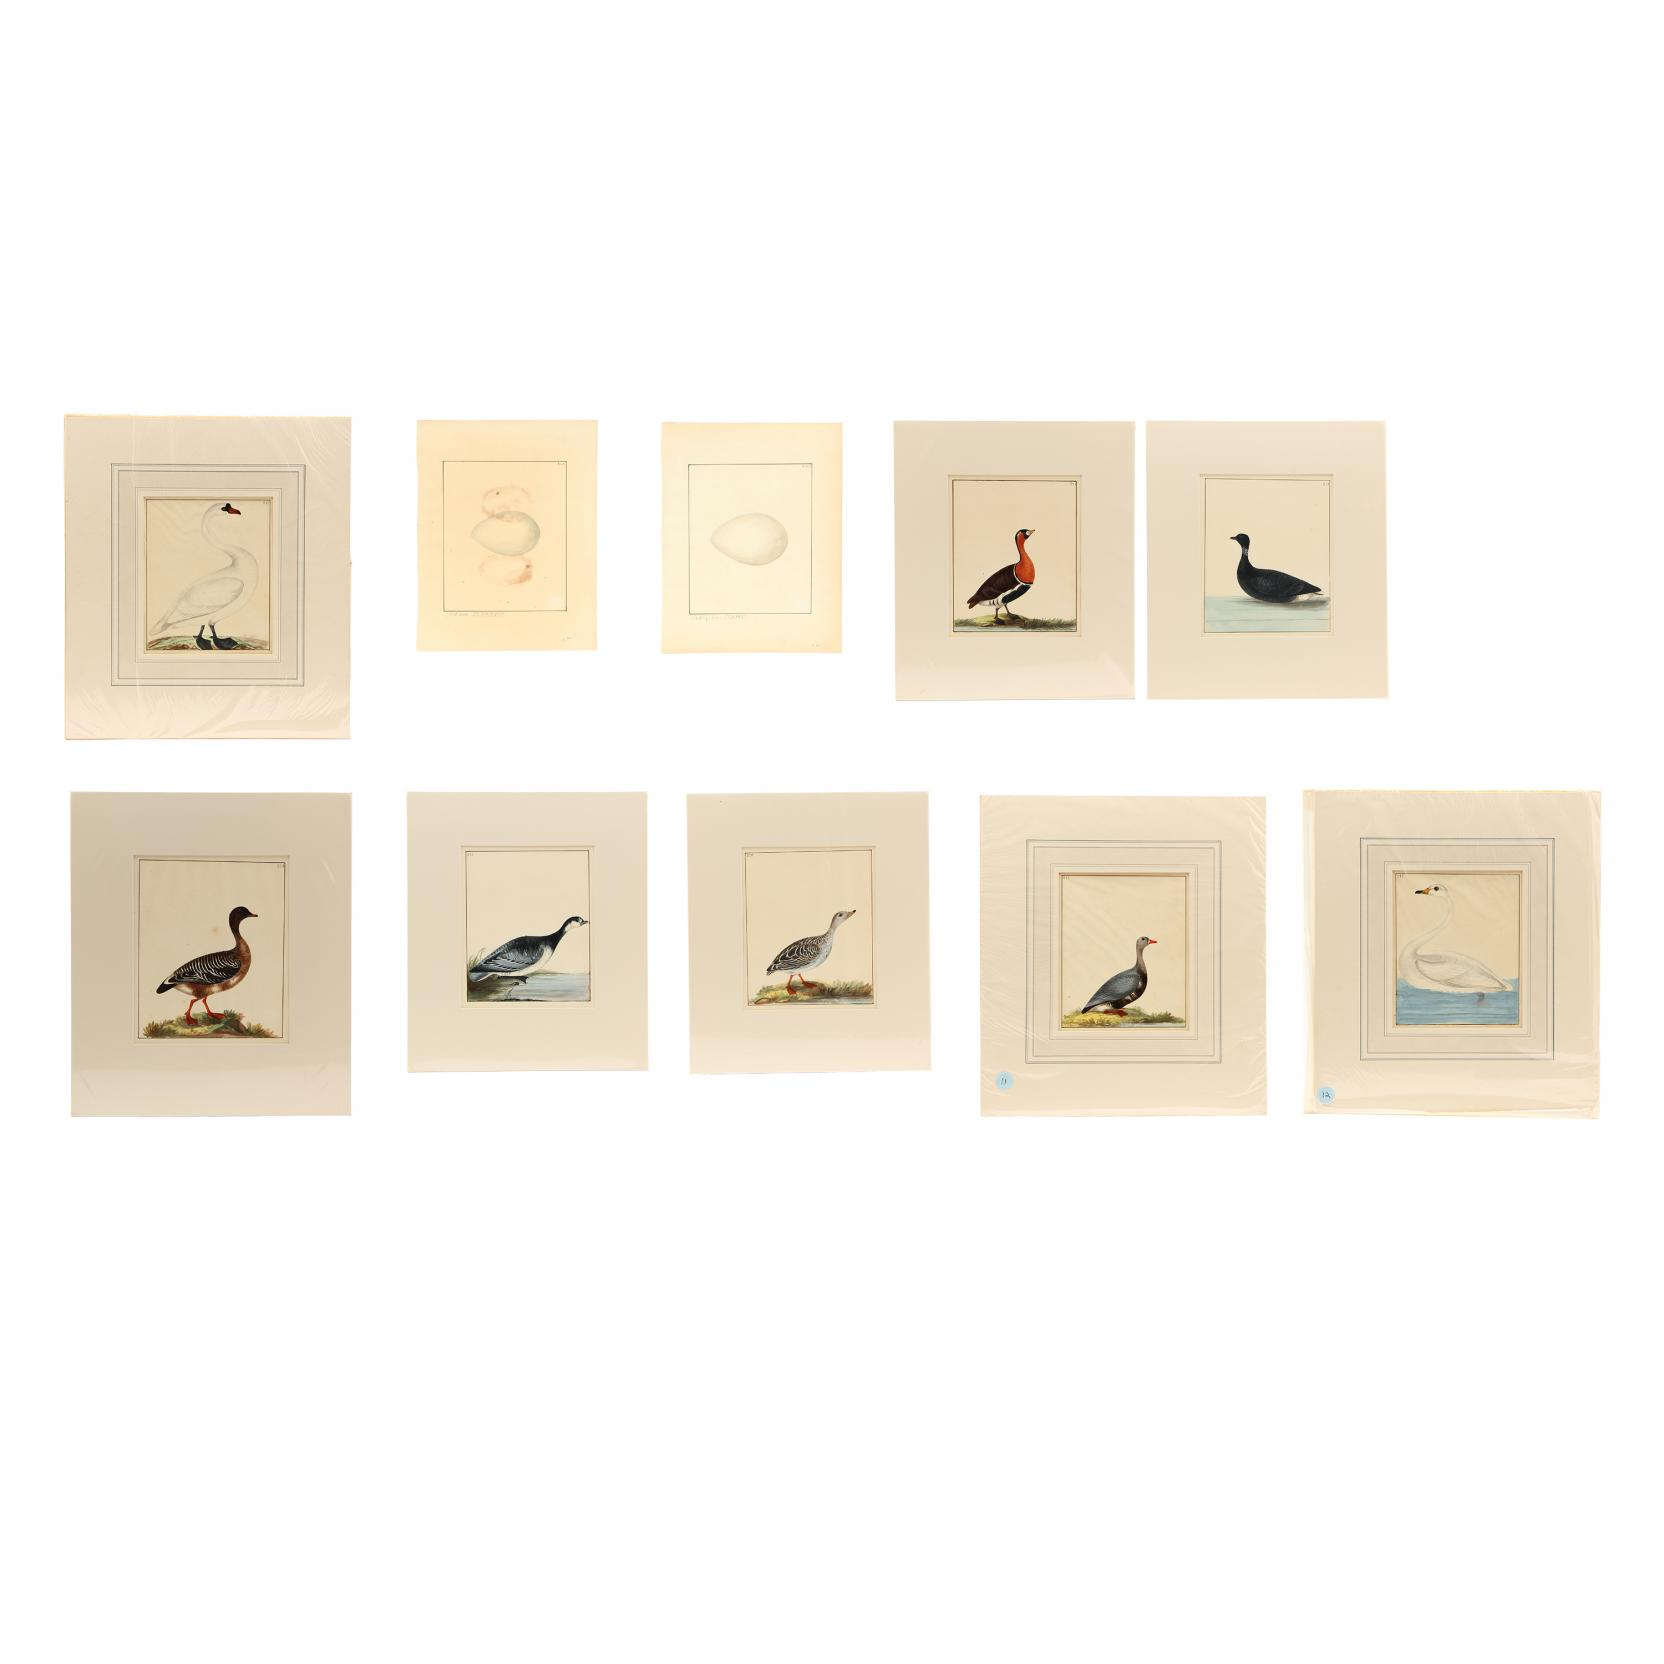 william-lewin-british-1747-1795-group-of-10-watercolor-illustrations-from-i-the-birds-of-great-britain-with-their-eggs-accurately-figured-i